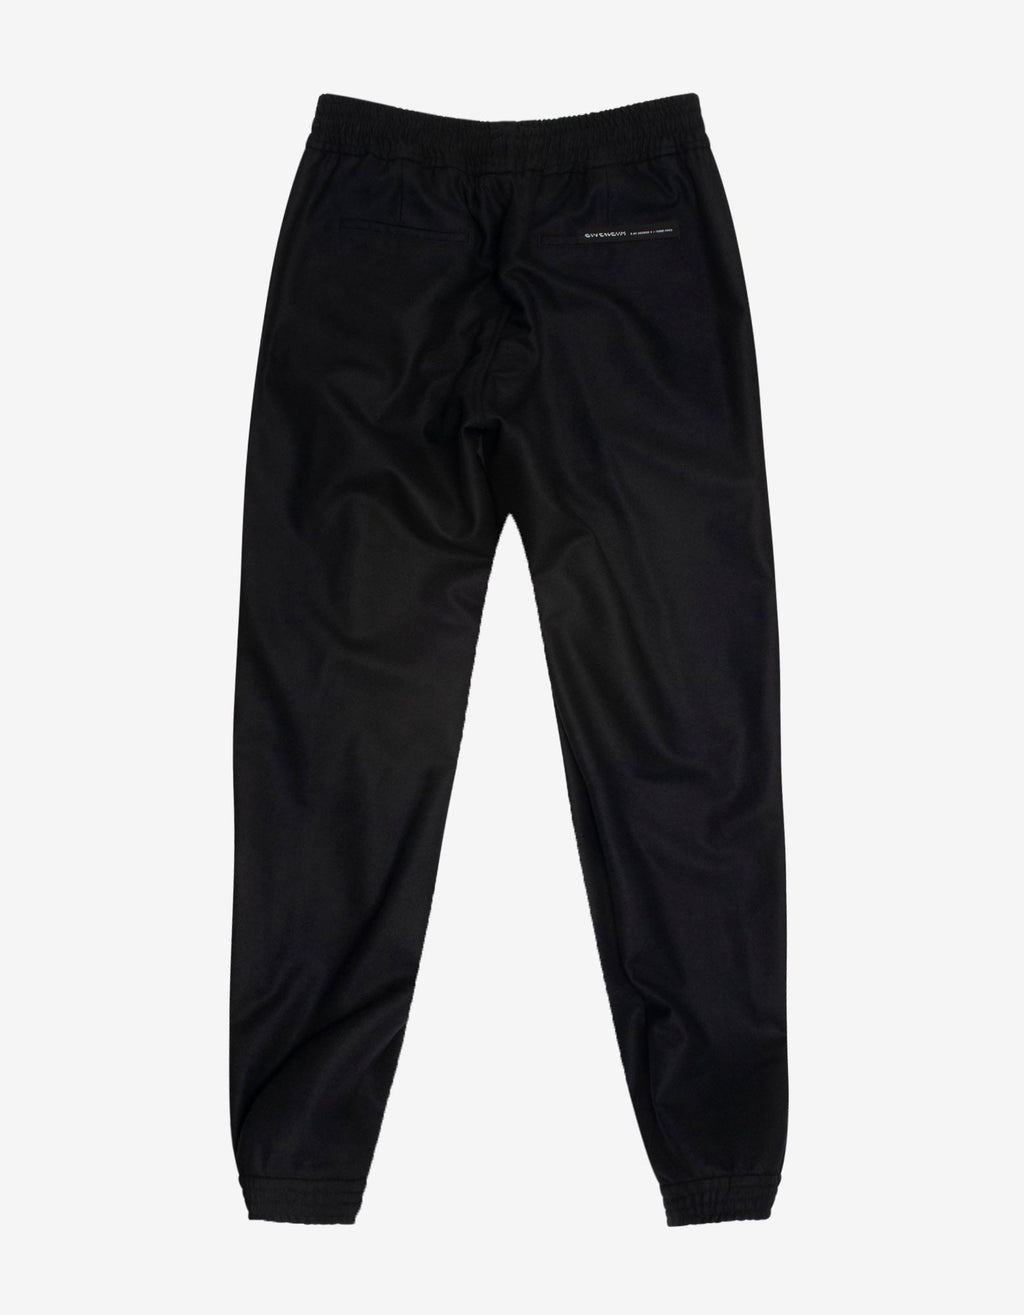 Black Wool Jogging Bottoms